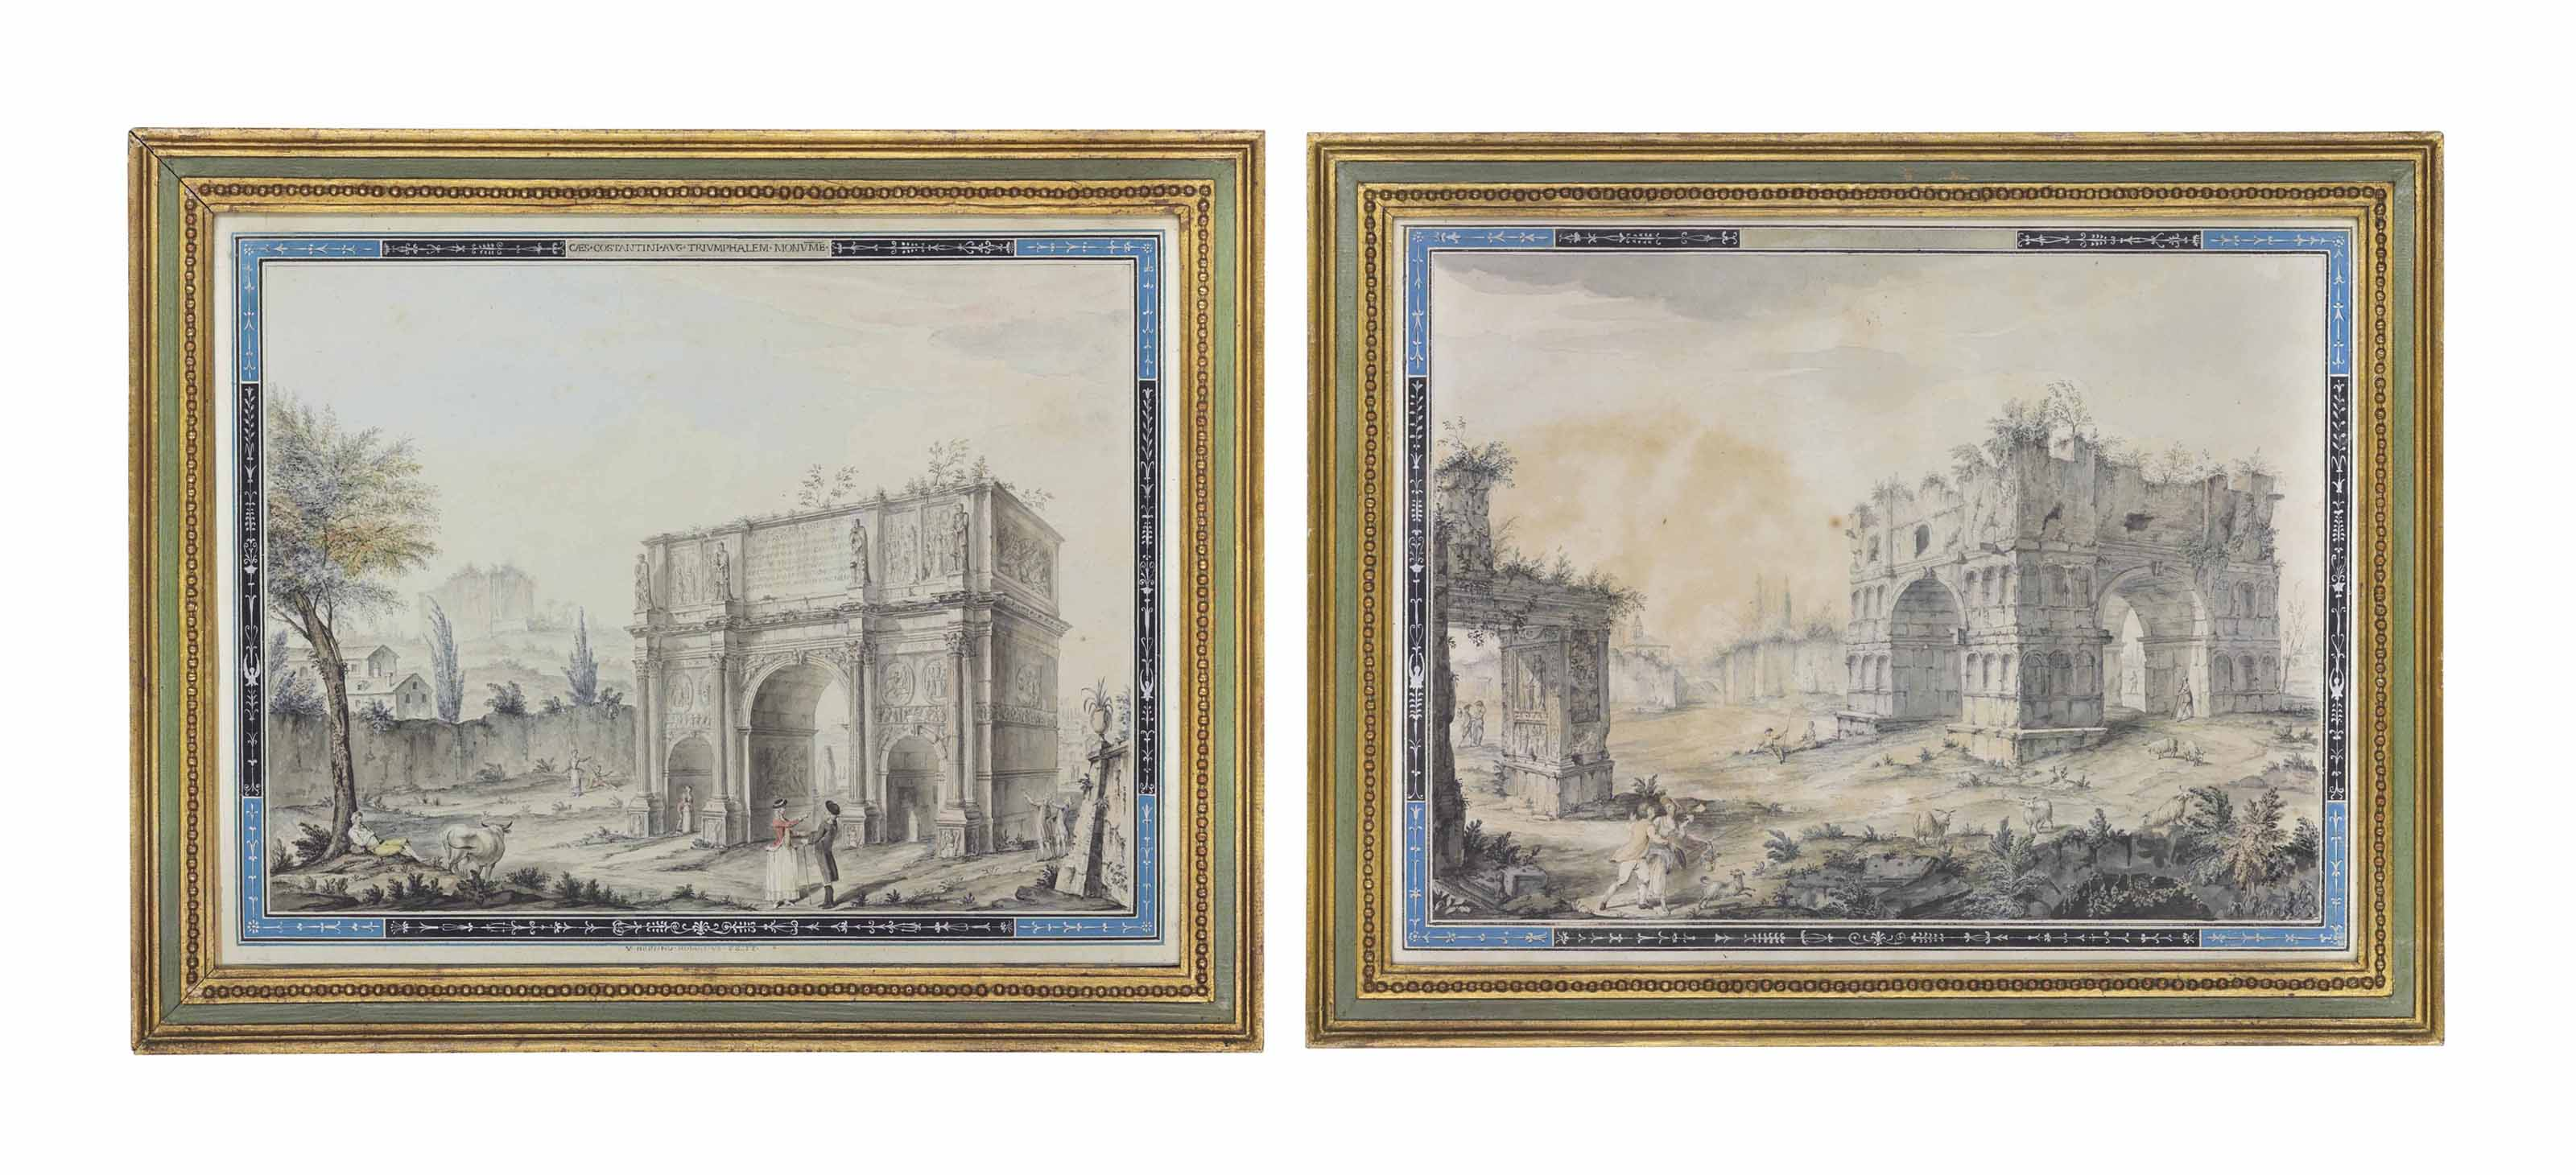 A view of the Arch of Constantine; and A view of a Roman arch, both surrounded by a decorative border